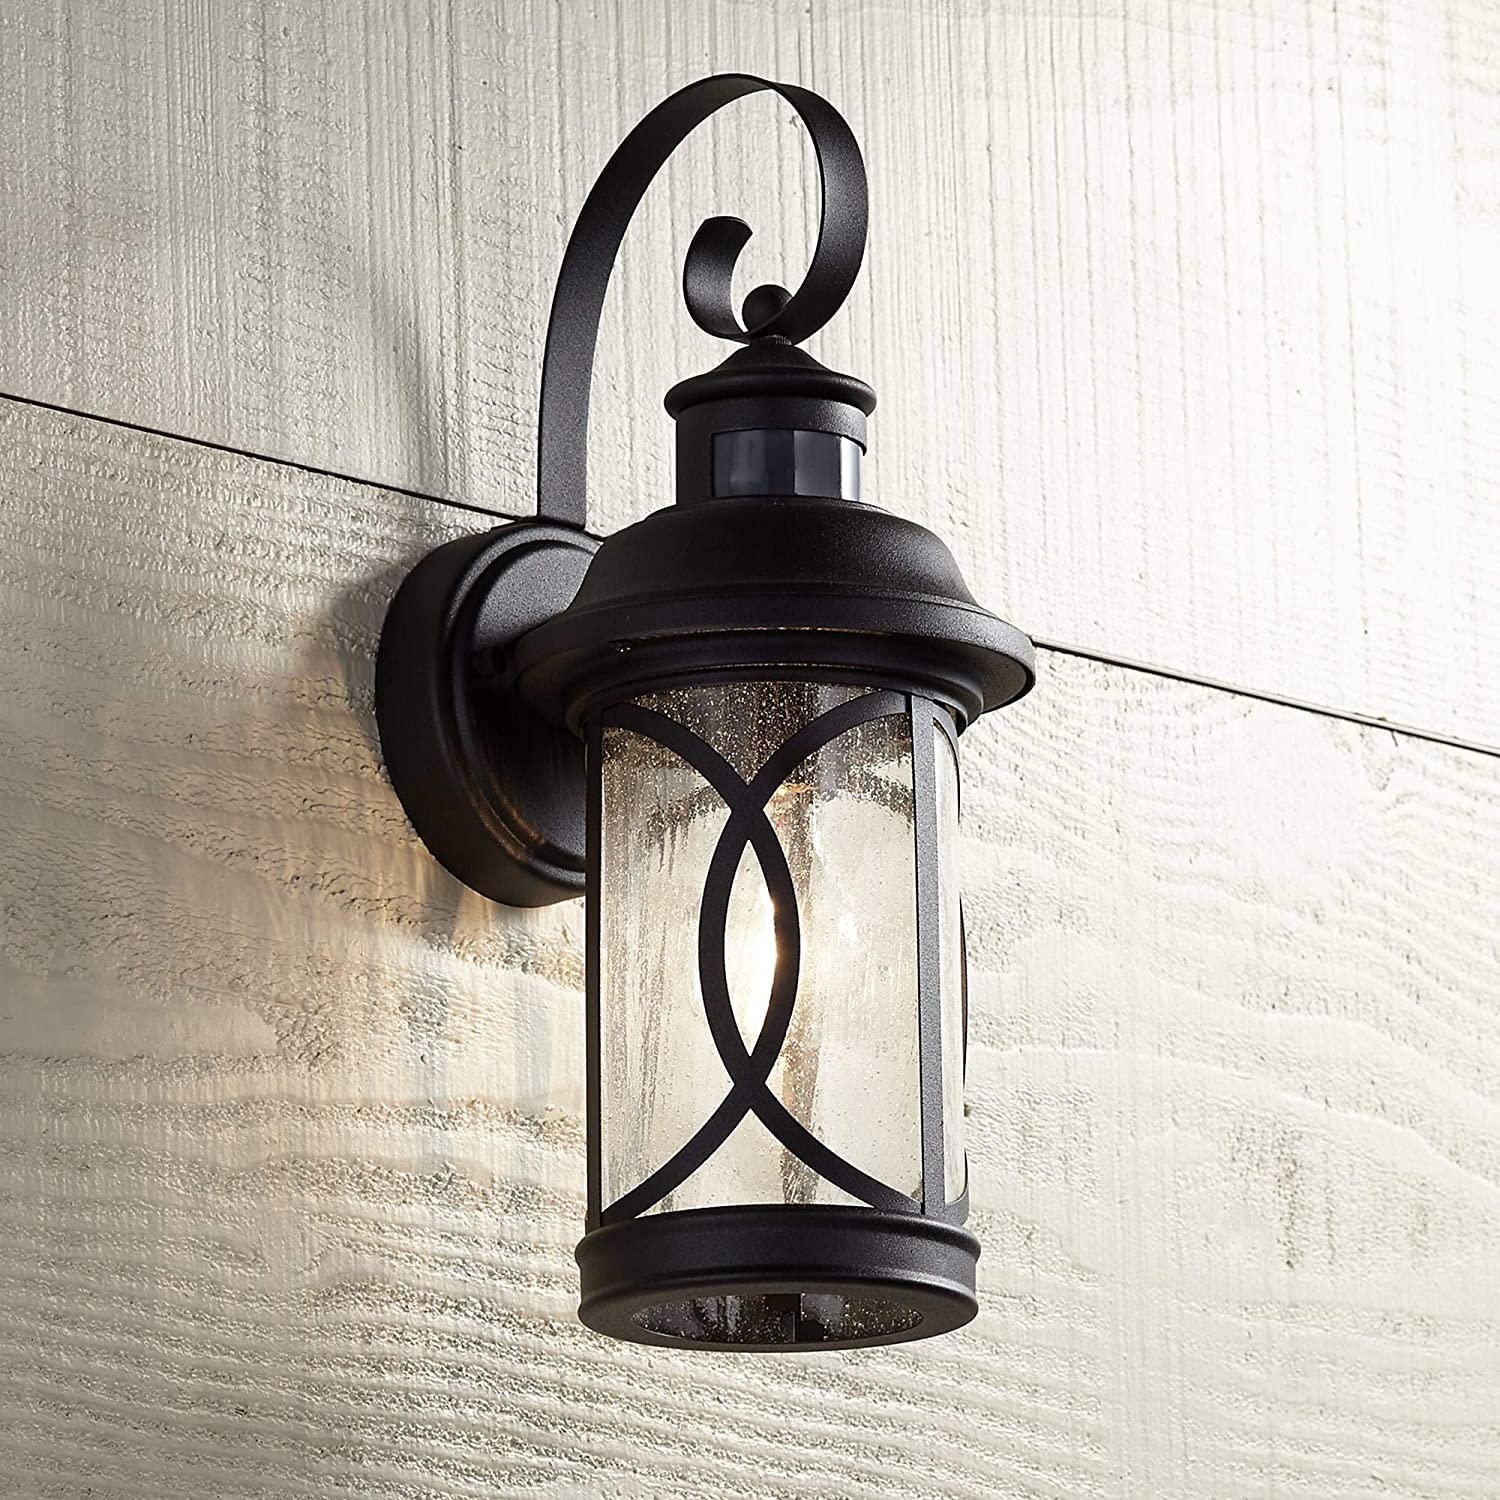 Capistrano Mission Outdoor Wall Light Fixture Led Black Hanging 12 75 Motion Security Sensor Dusk To Dawn Exterior House Porch Patio Outside Deck Garage Yard Front Door Home John Timberland Amazon Com